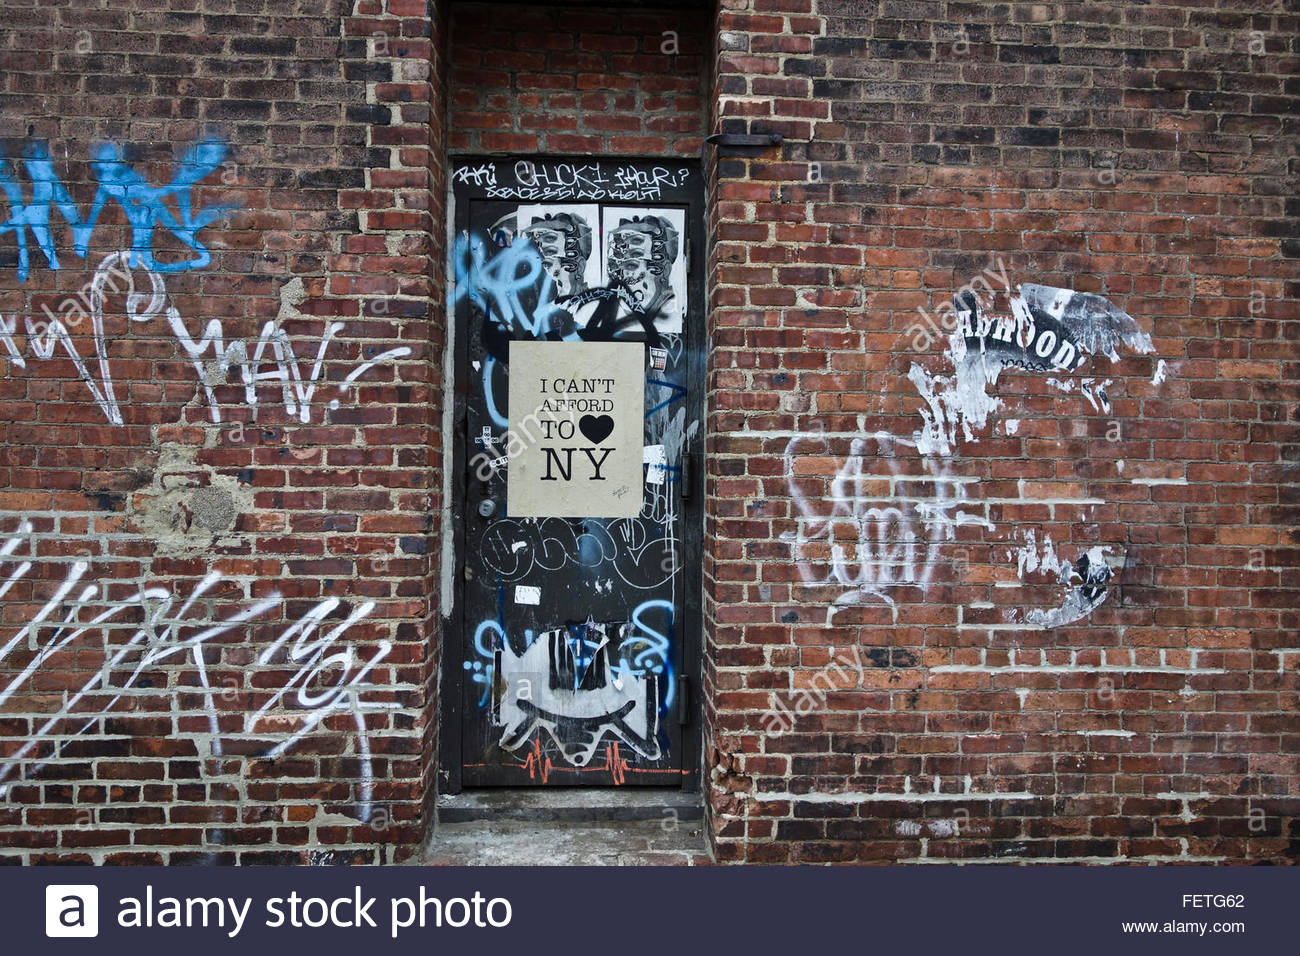 Graffiti on door and brick walls